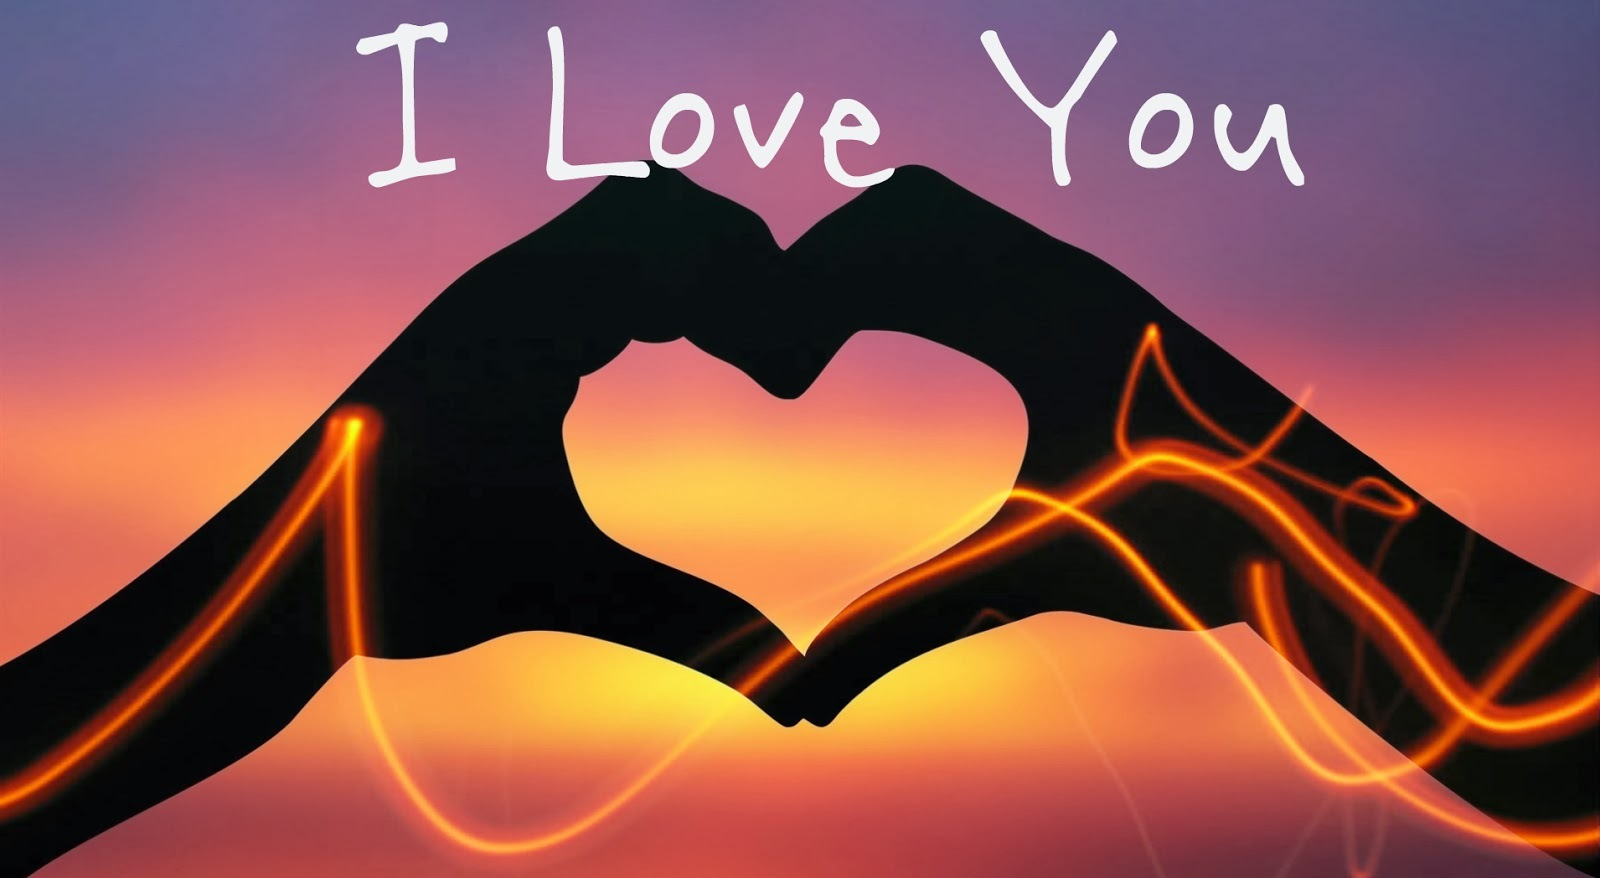 Free Download 50 Pictures To Say I Love You 1600x878 For Your